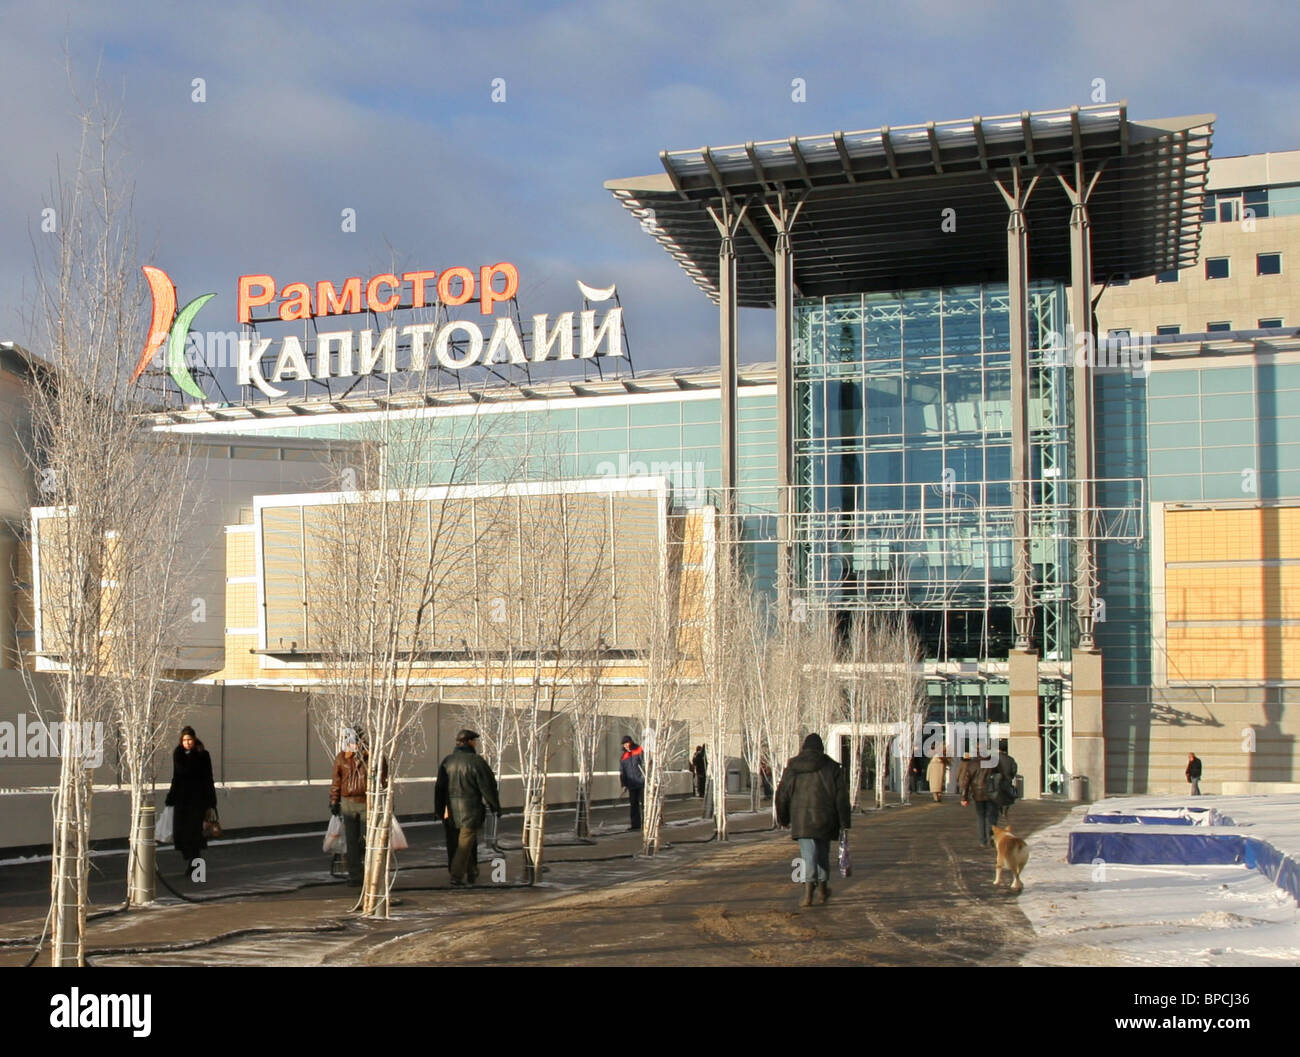 Ramstore retail chain - Stock Image